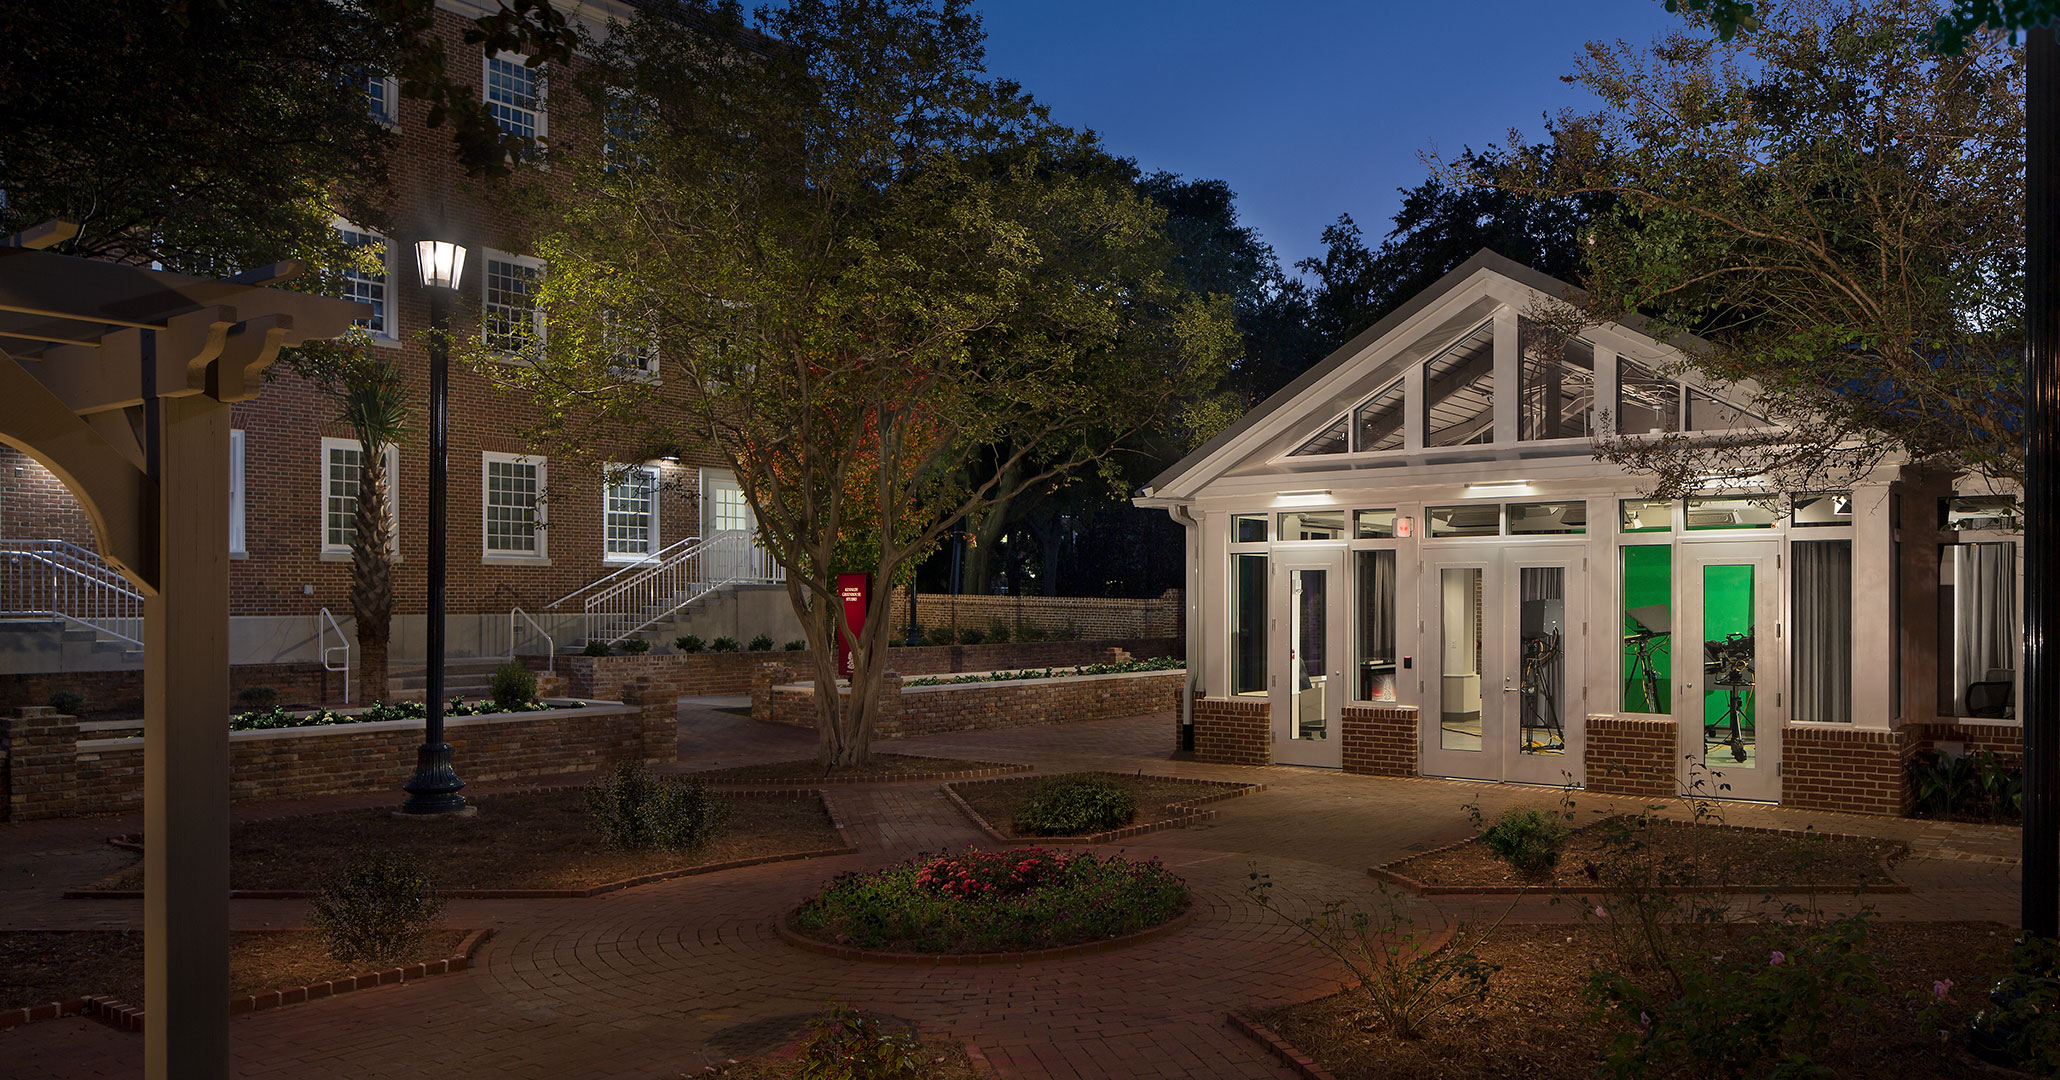 University of South Carolina worked with Boudreaux architects to design improvements to the historic property the Kennedy House.